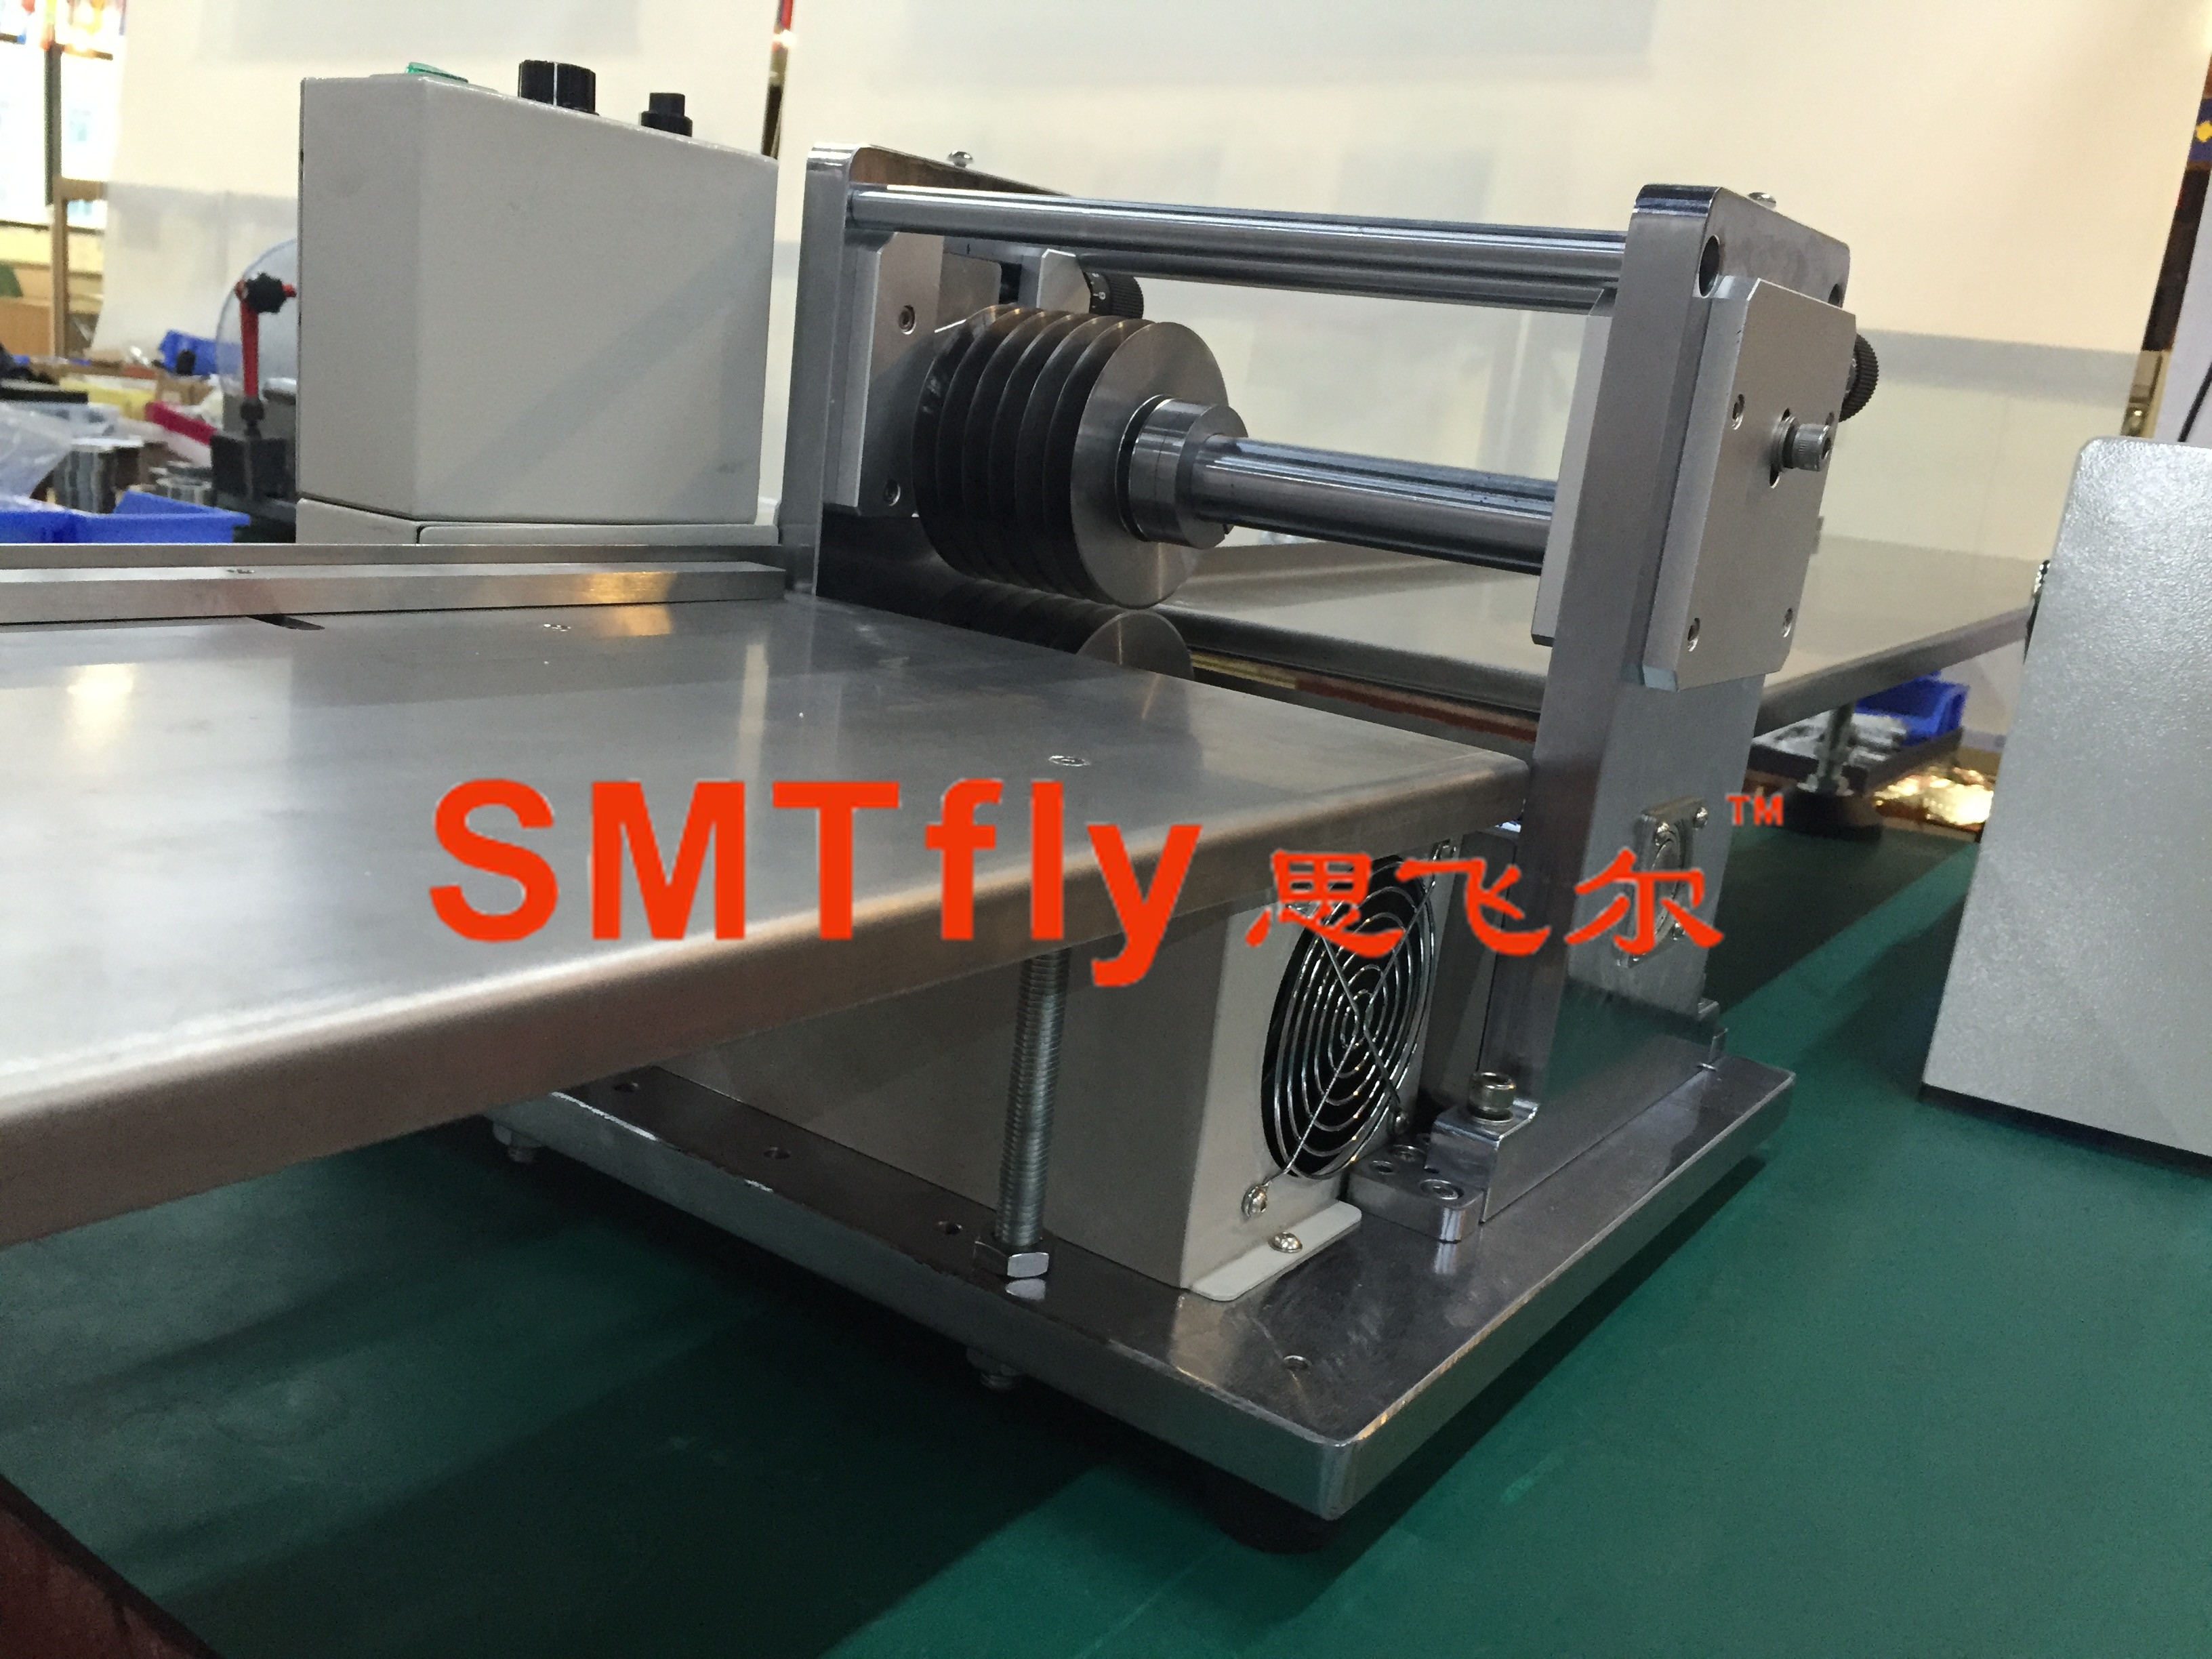 Led Depanelizer China Automatic V Cut Pcb Singulation Machine For Printed Circuit Board Separating Equipmentsmtfly 1sn